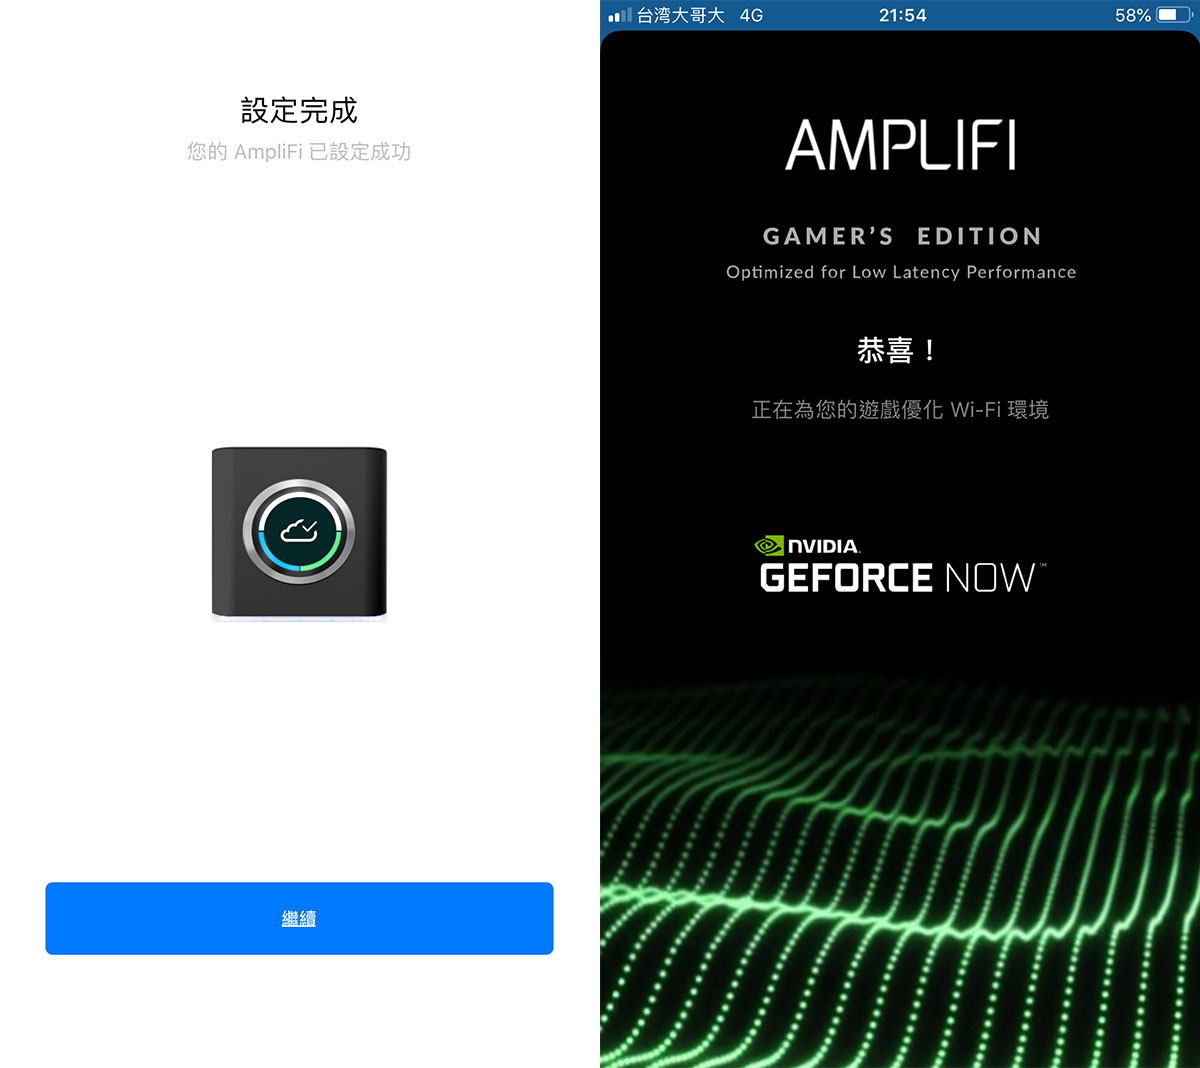 Ubiquiti AmpliFi Gamer's Edition 評測:Mesh WiFi 低延遲網路優化 28